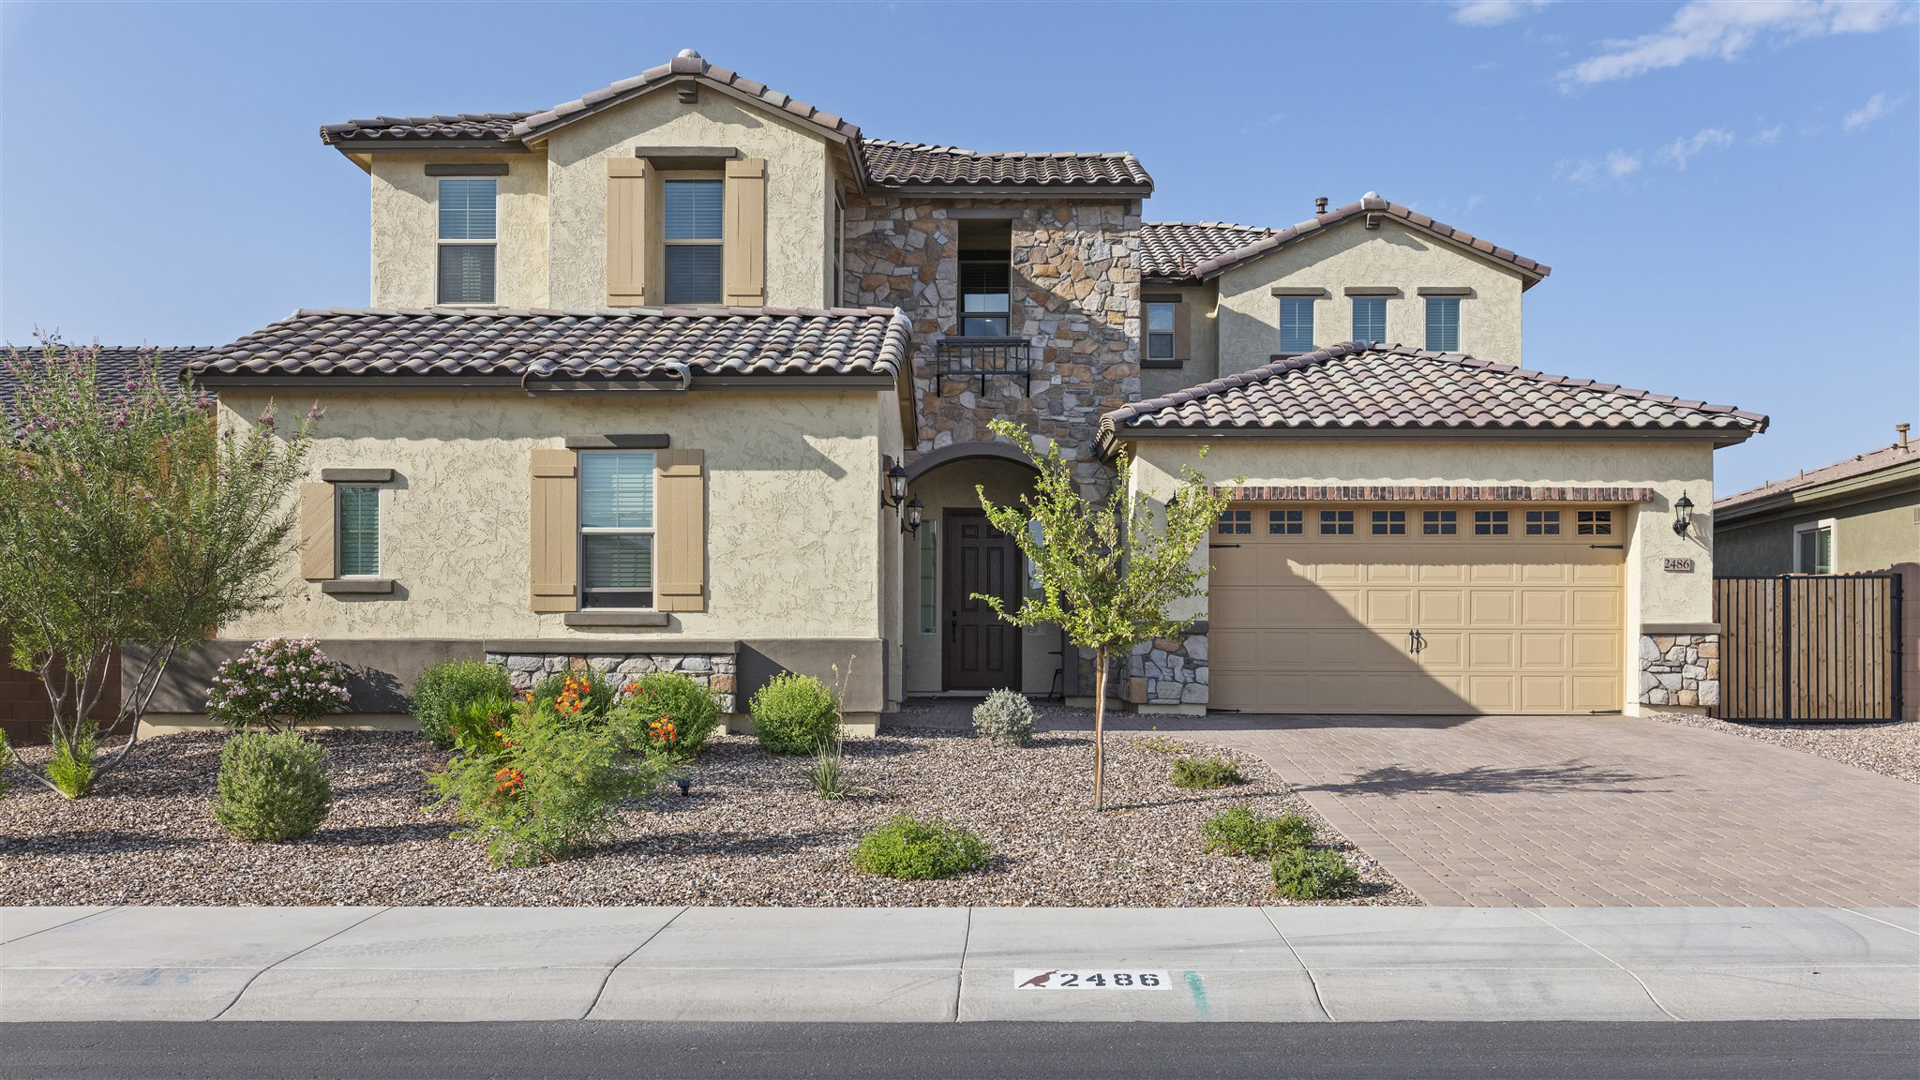 UNDER CONTRACT IN ONE DAY - 2486 E Bellerive Drive, Gilbert, AZ 85298 - Adora Trails | The Amy Jones Group